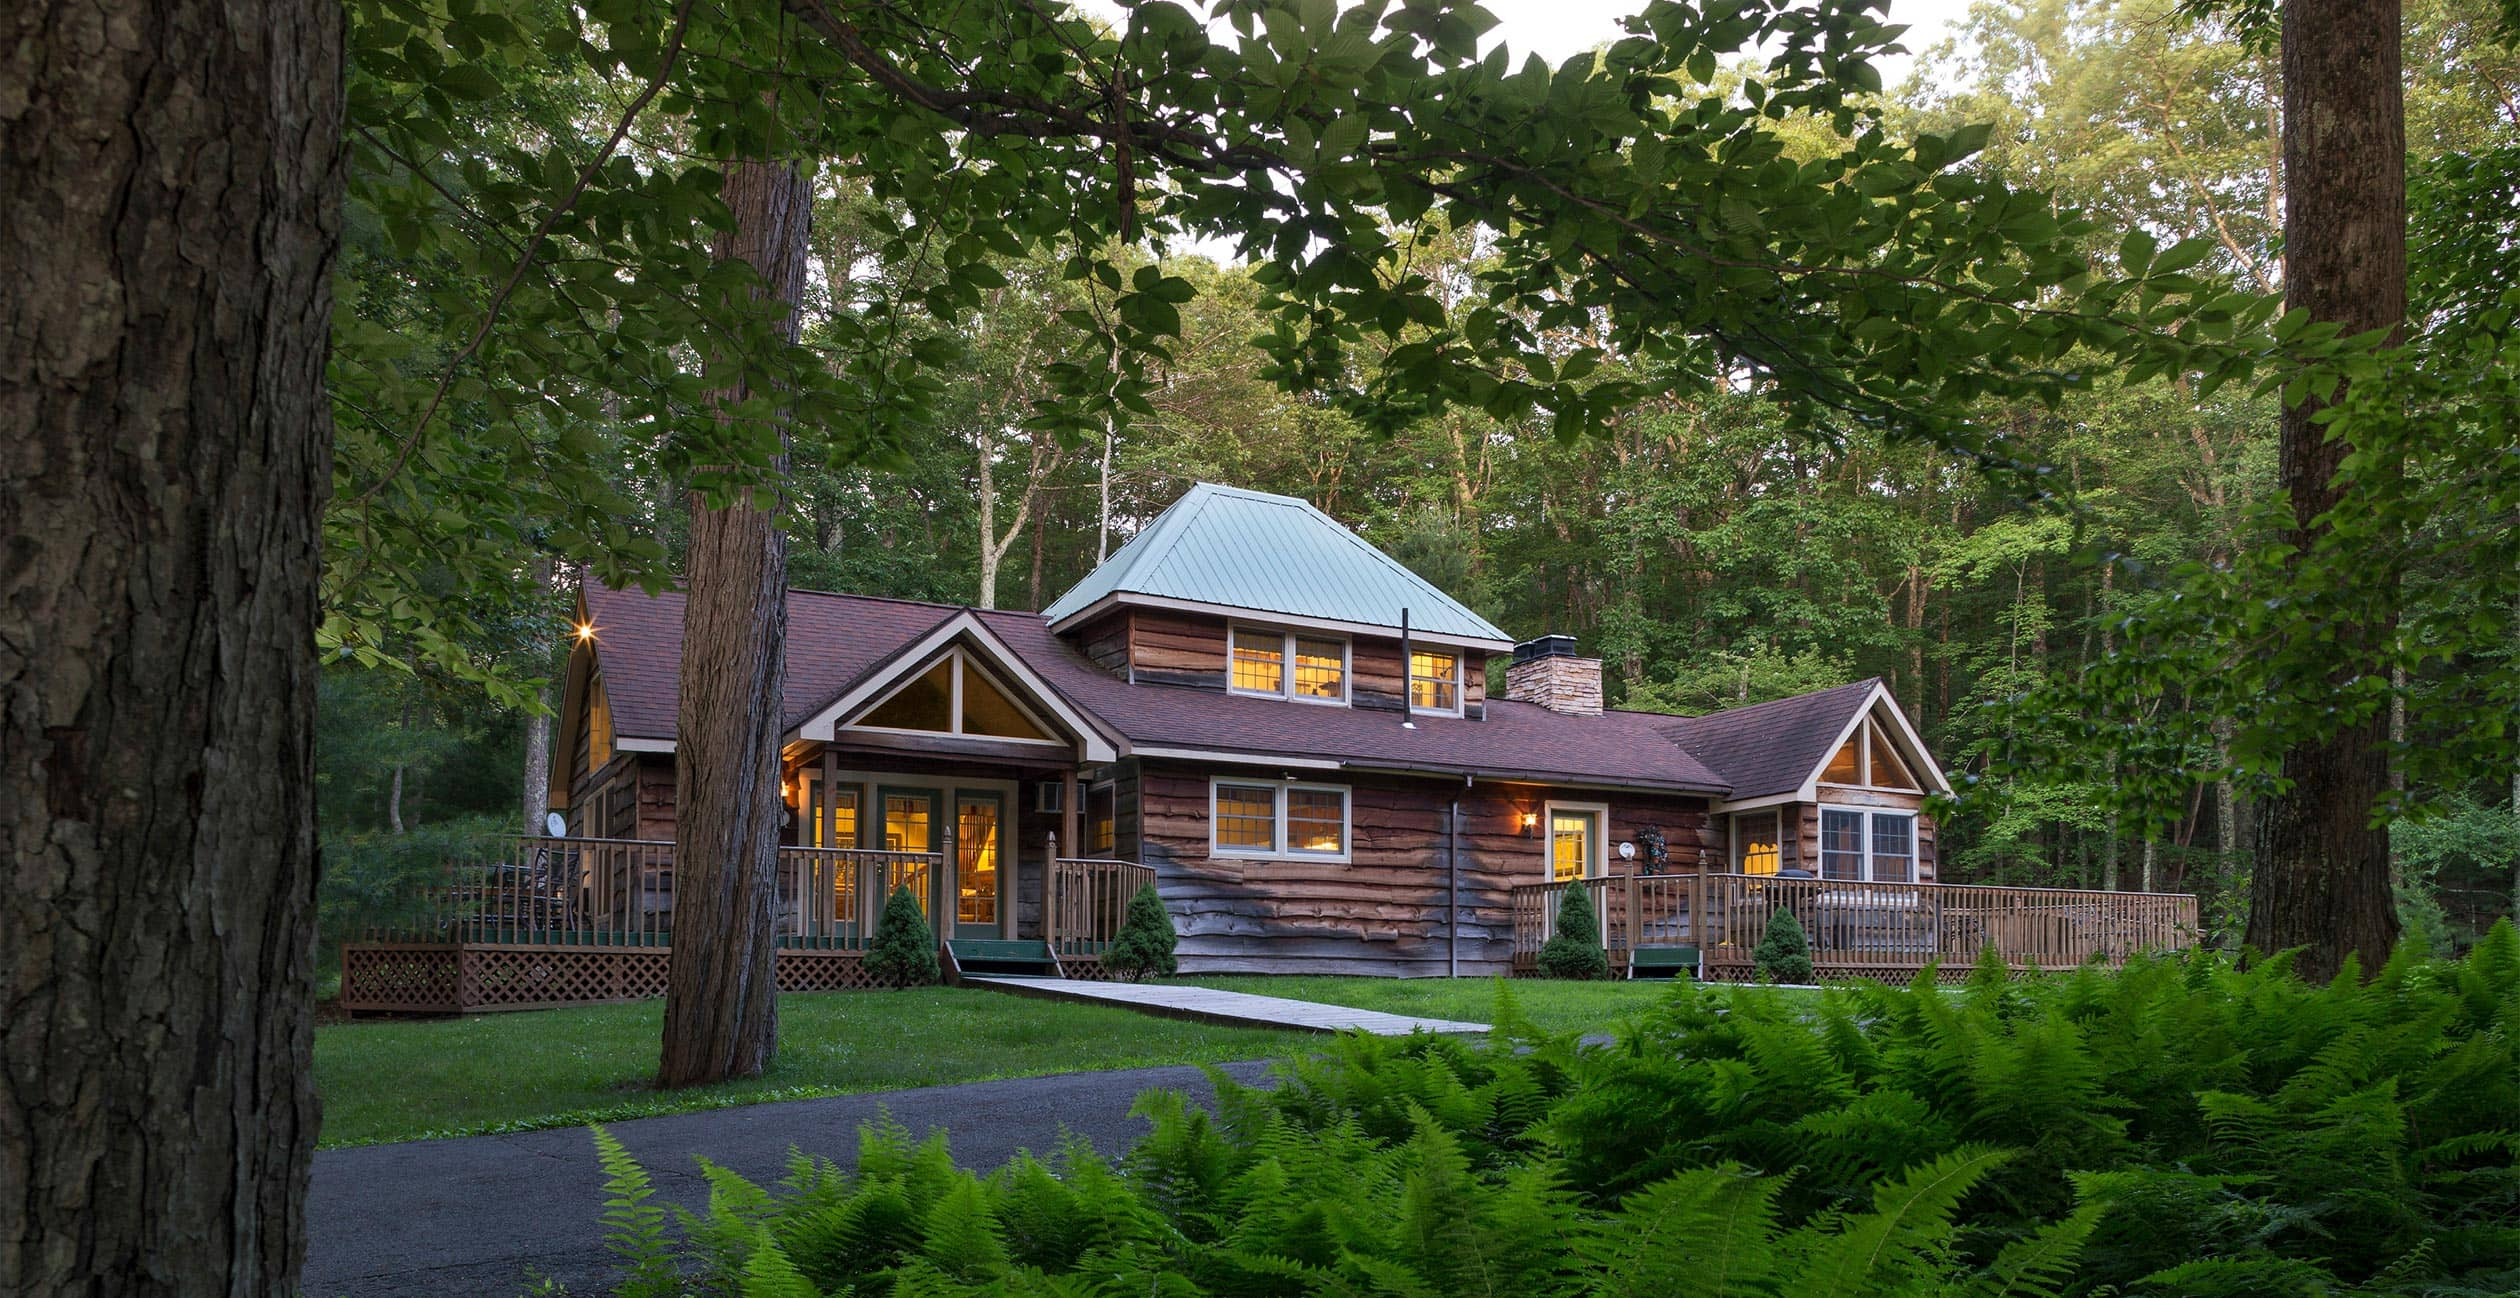 Exterior of Cottage at Dusk